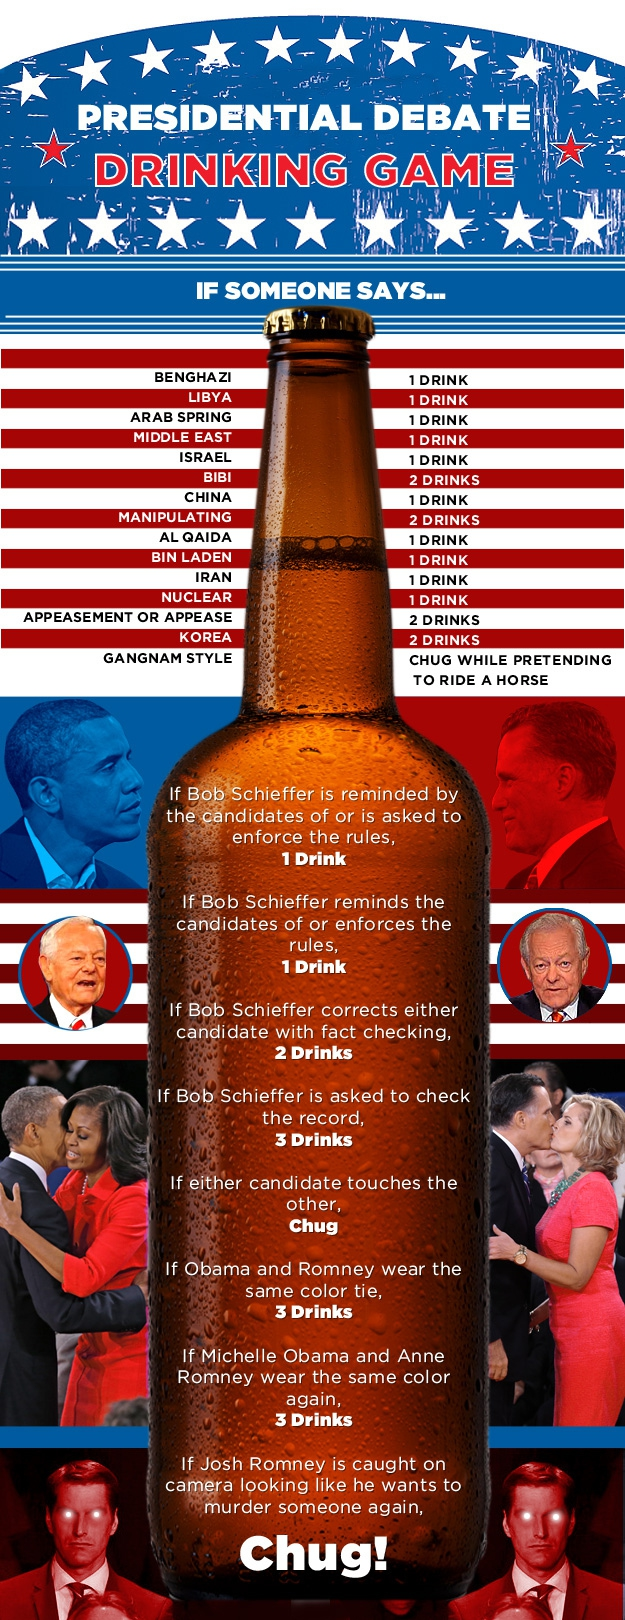 The Presidential Debate Drinking Game: Foreign Policy Edition от Kaye за 22 oct 2012